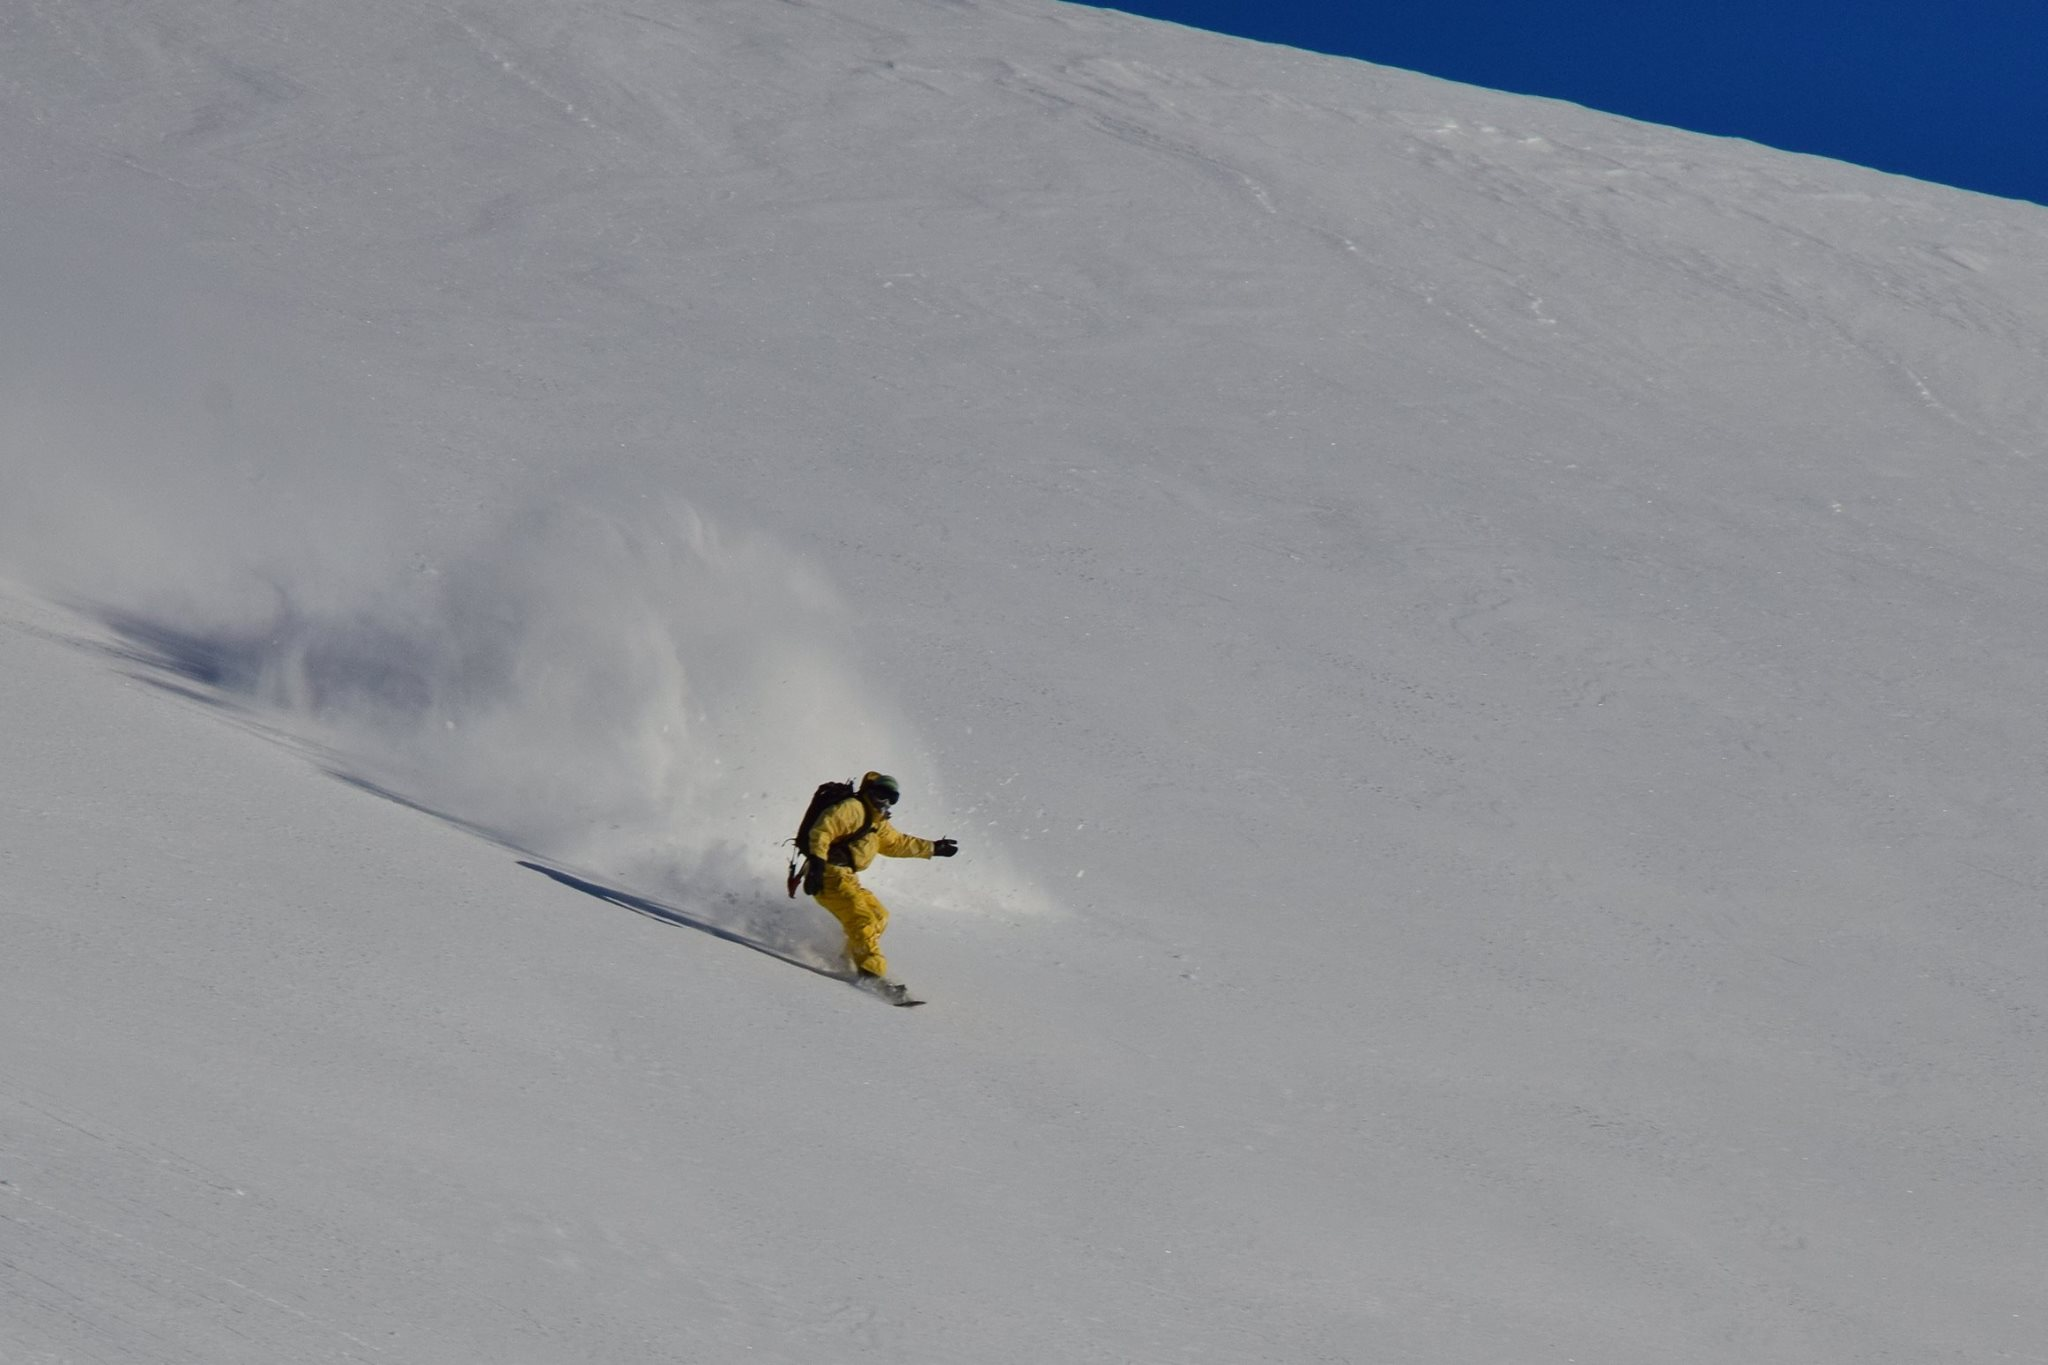 BC backcountry splitboard trip: Freeride snowboarding in Canada